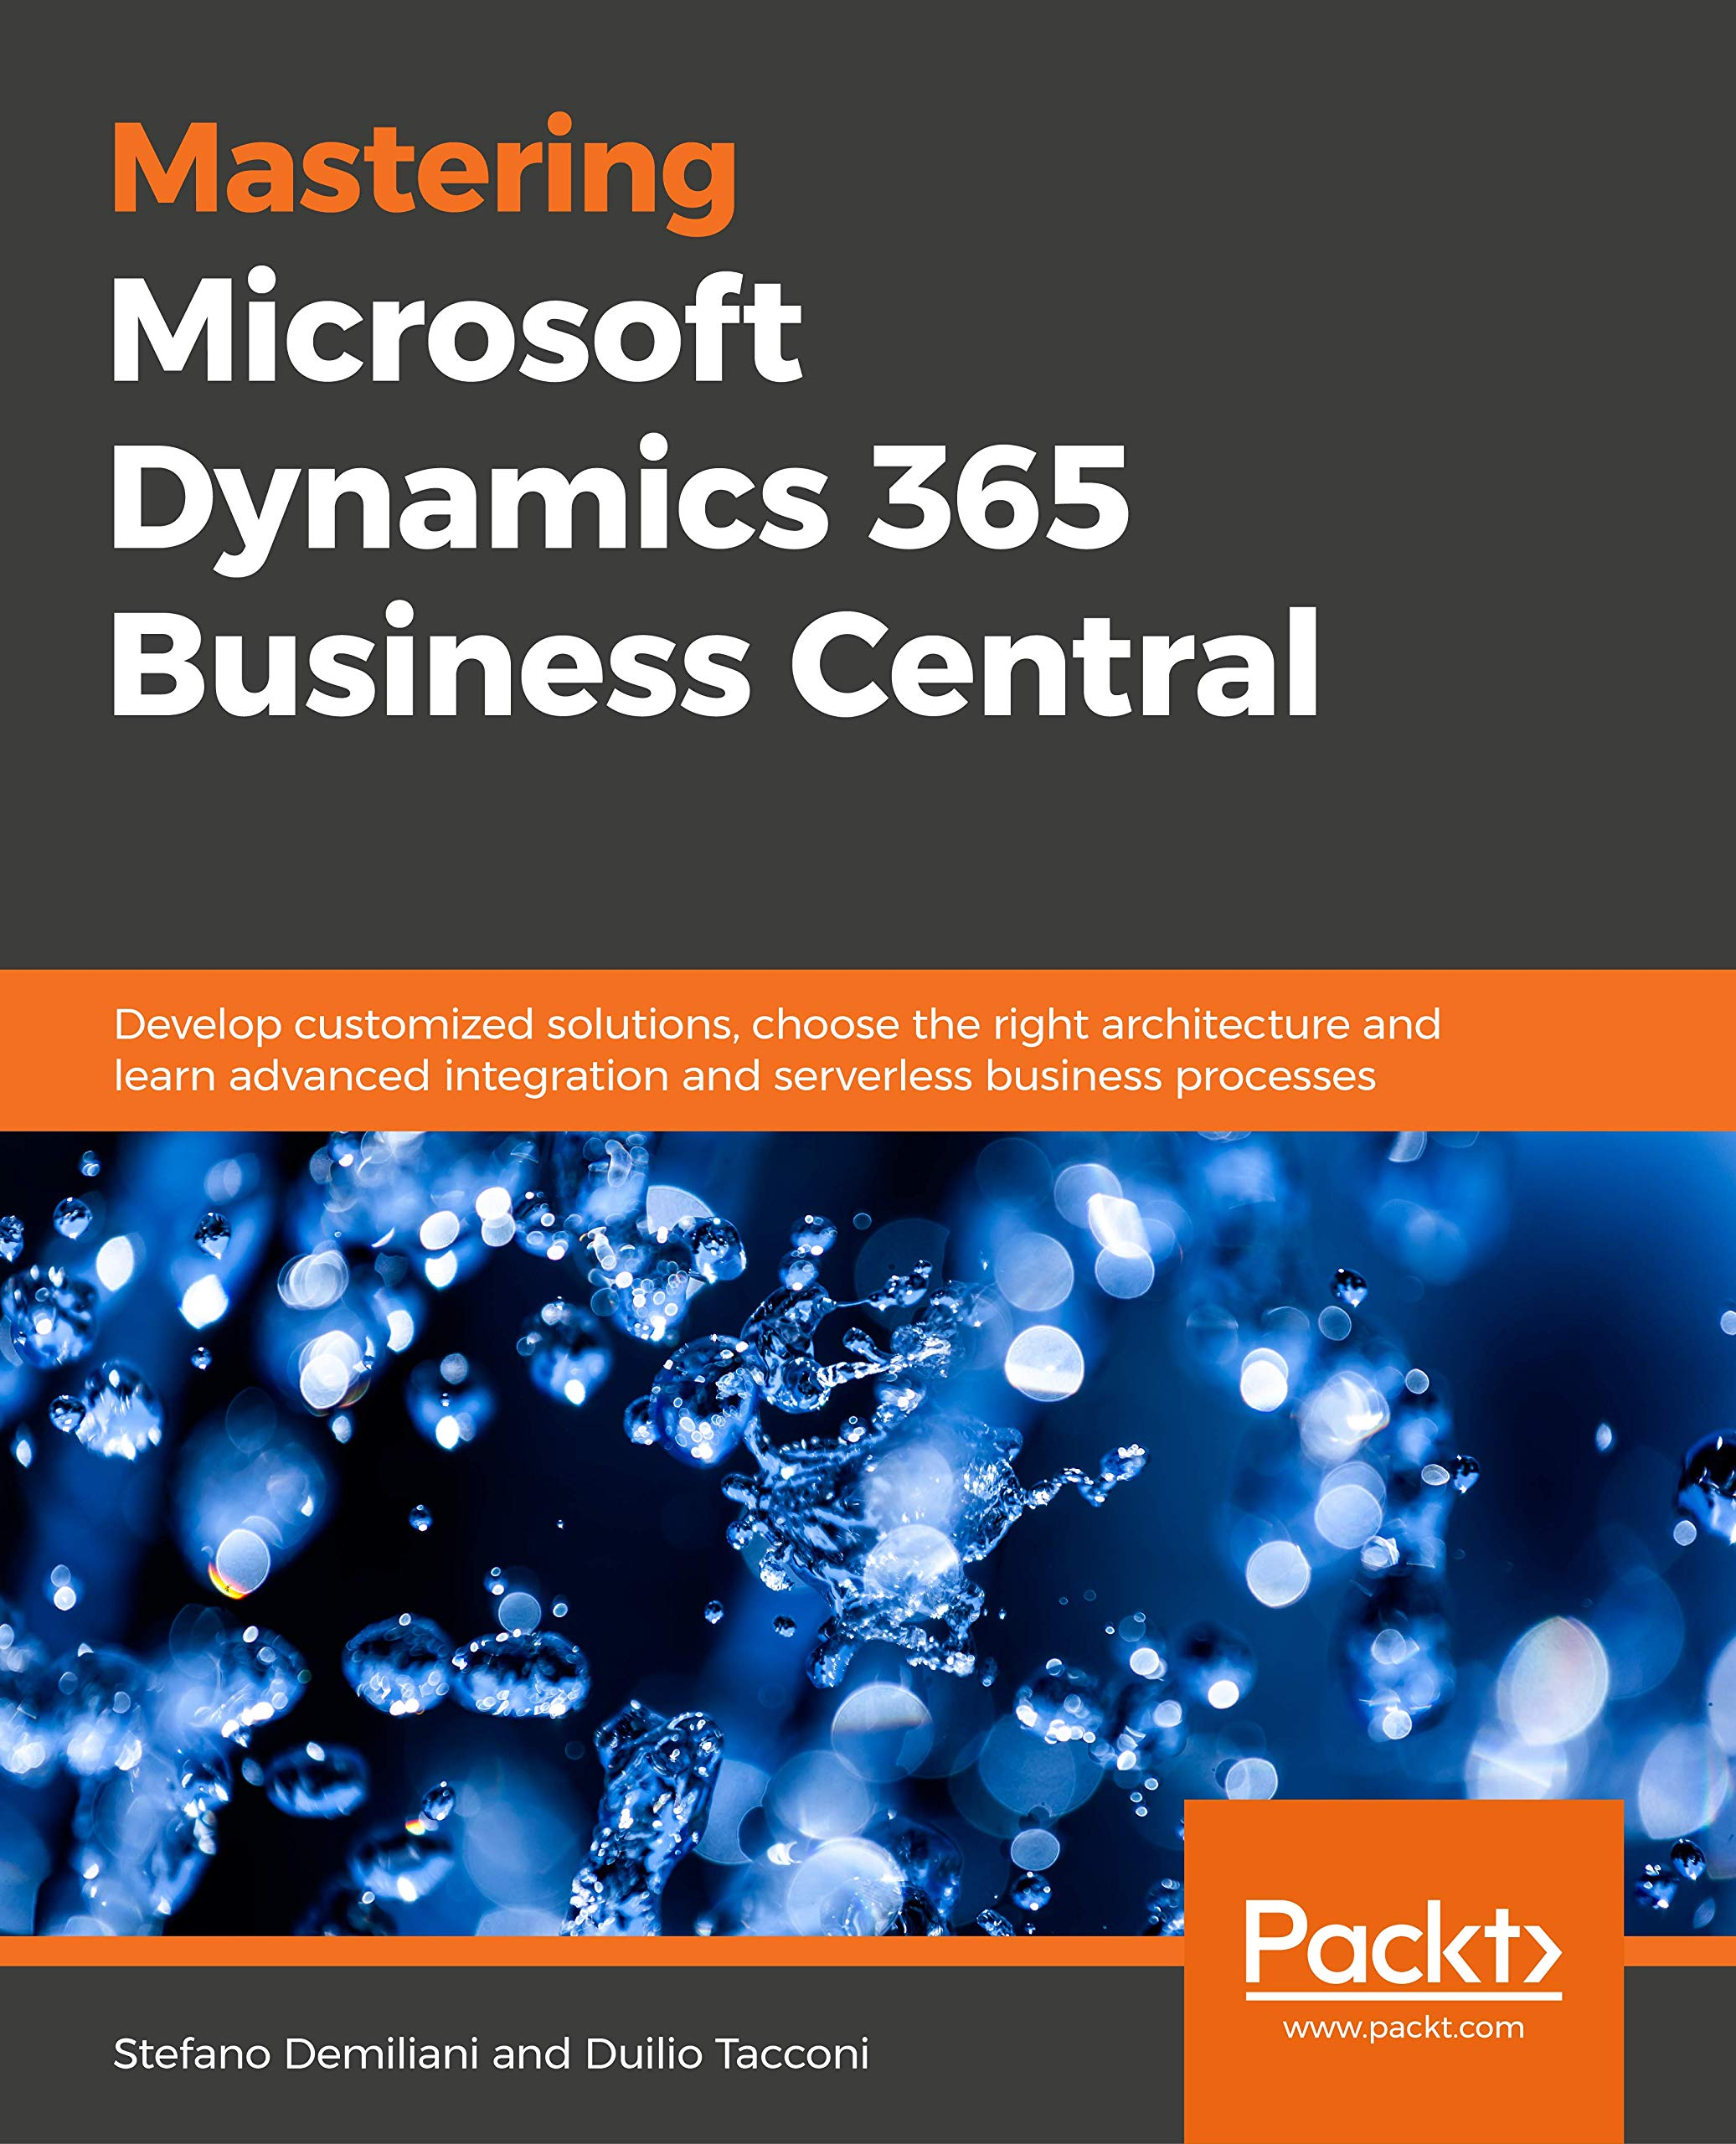 Mastering Microsoft Dynamics 365 Business Central: Develop